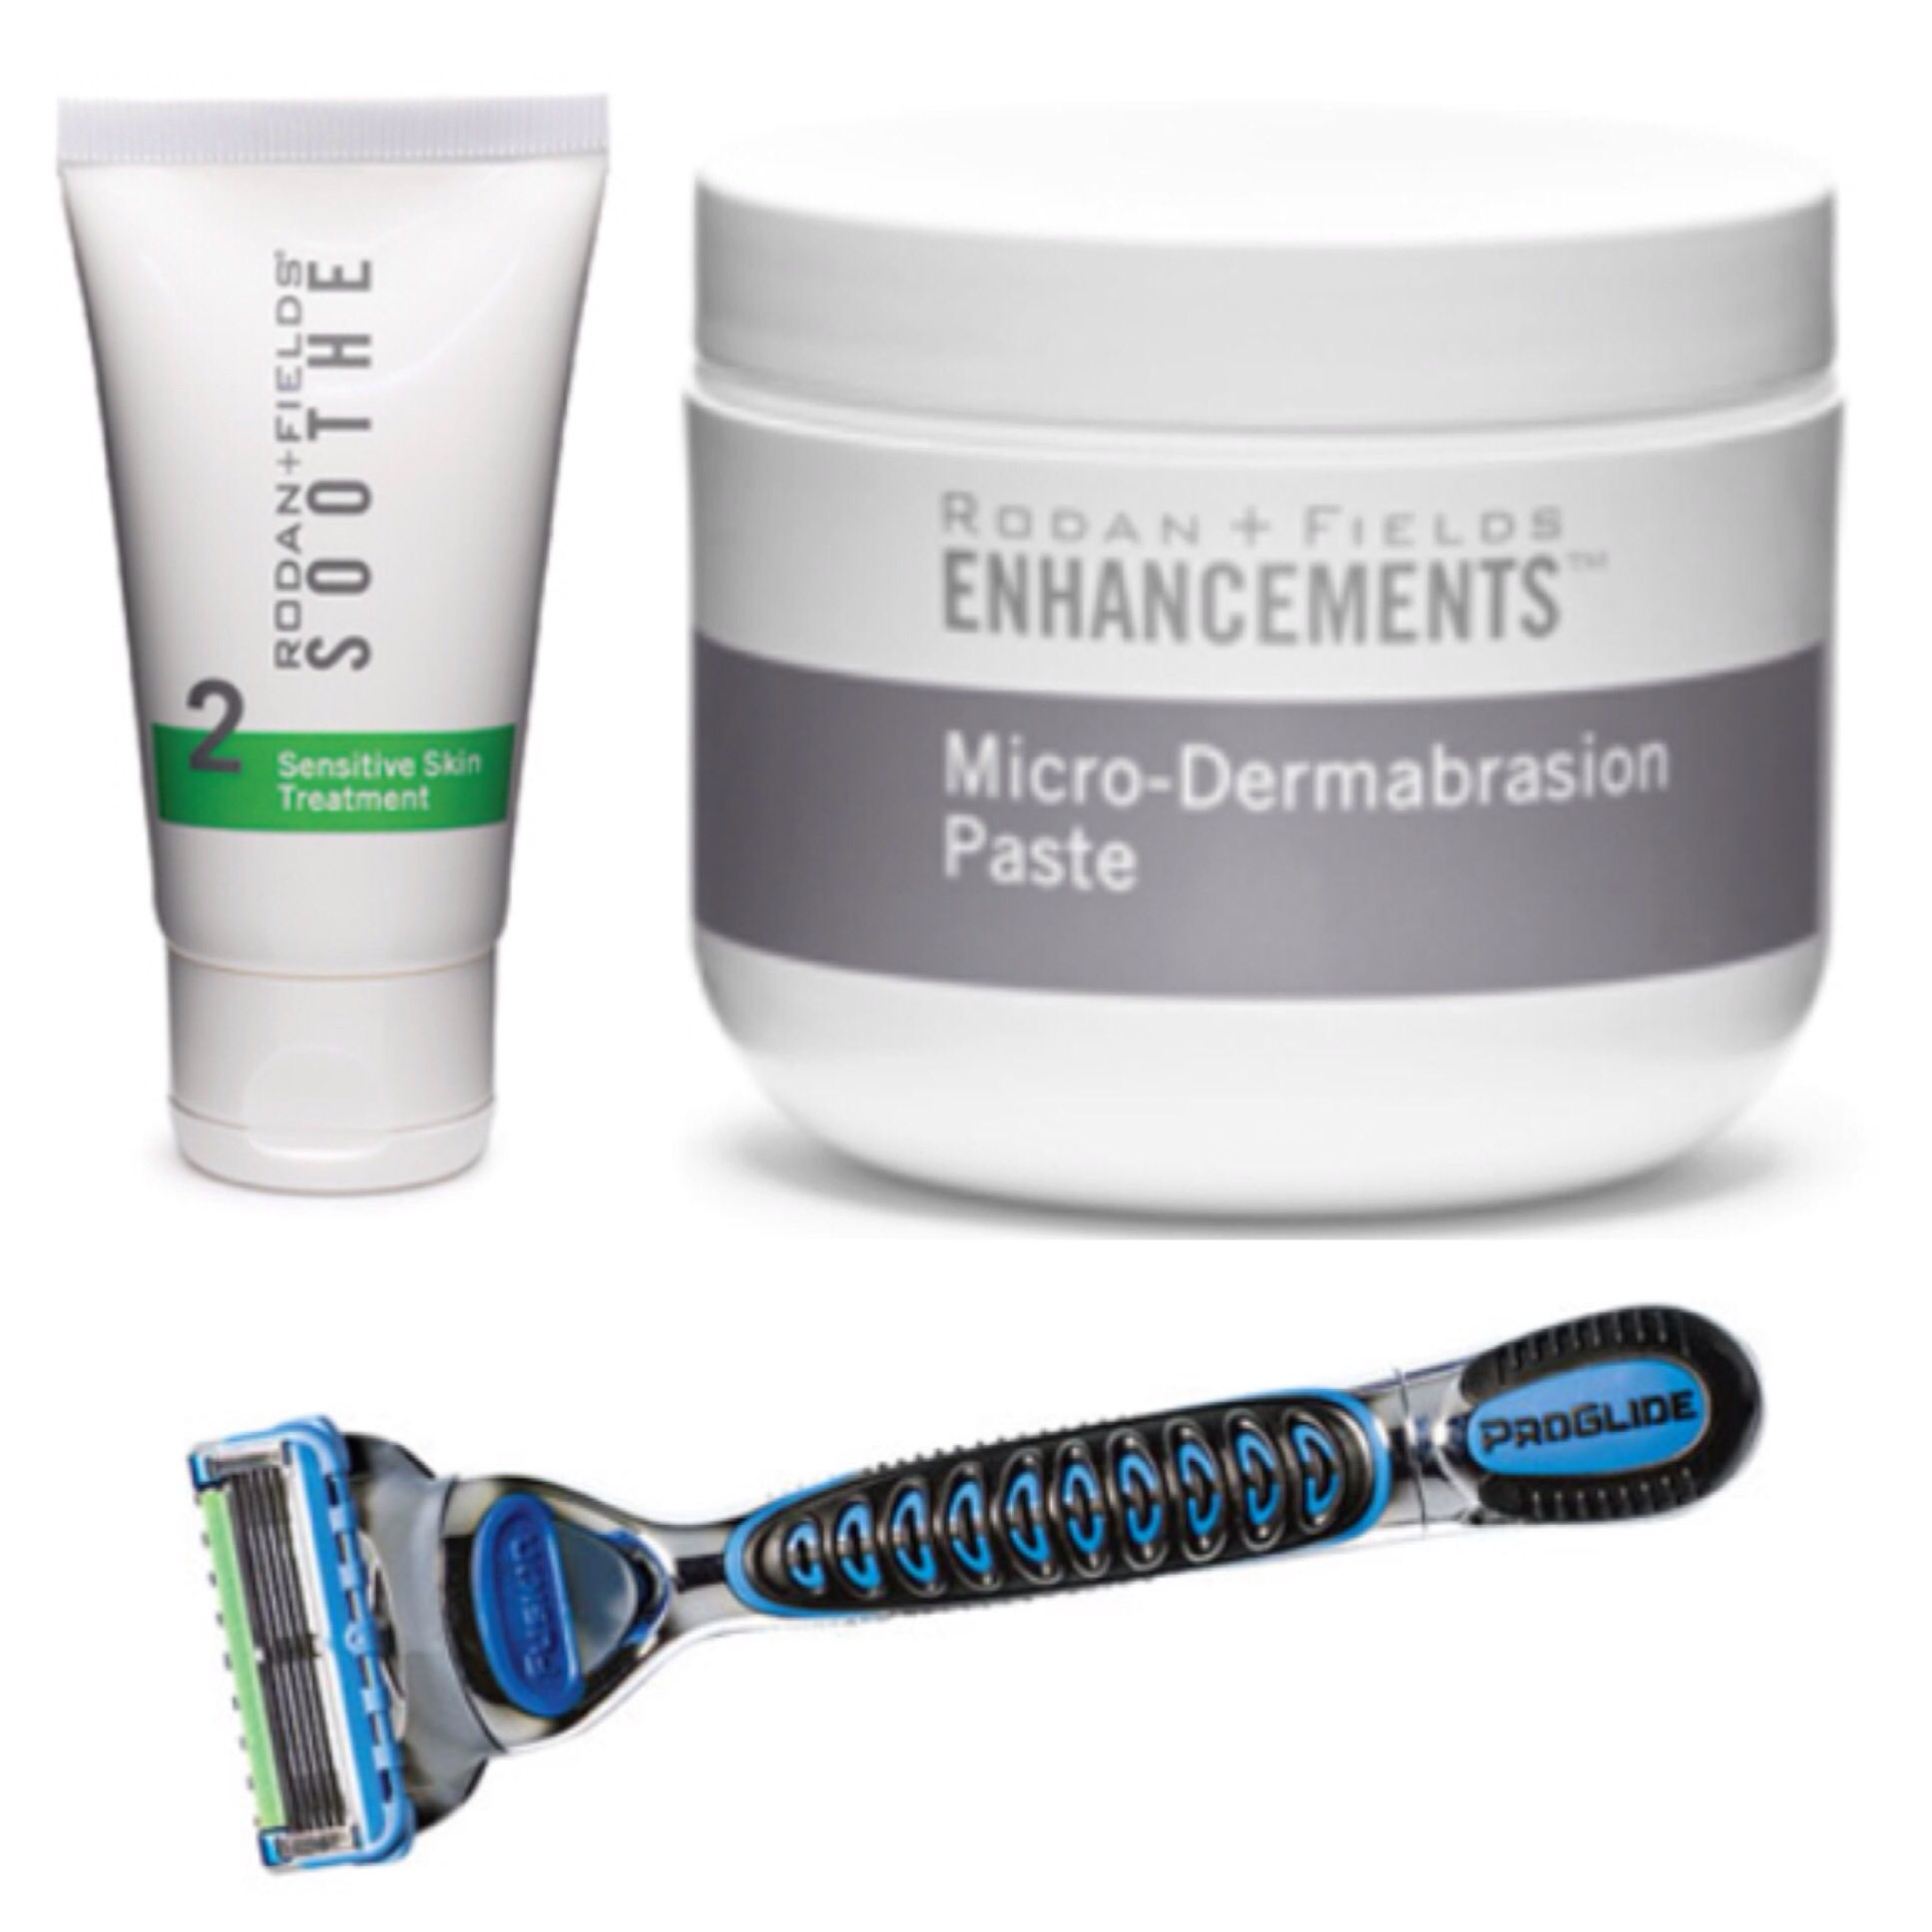 SMOOTHEST SHAVE EVER!! Rodan+Fields products can be used